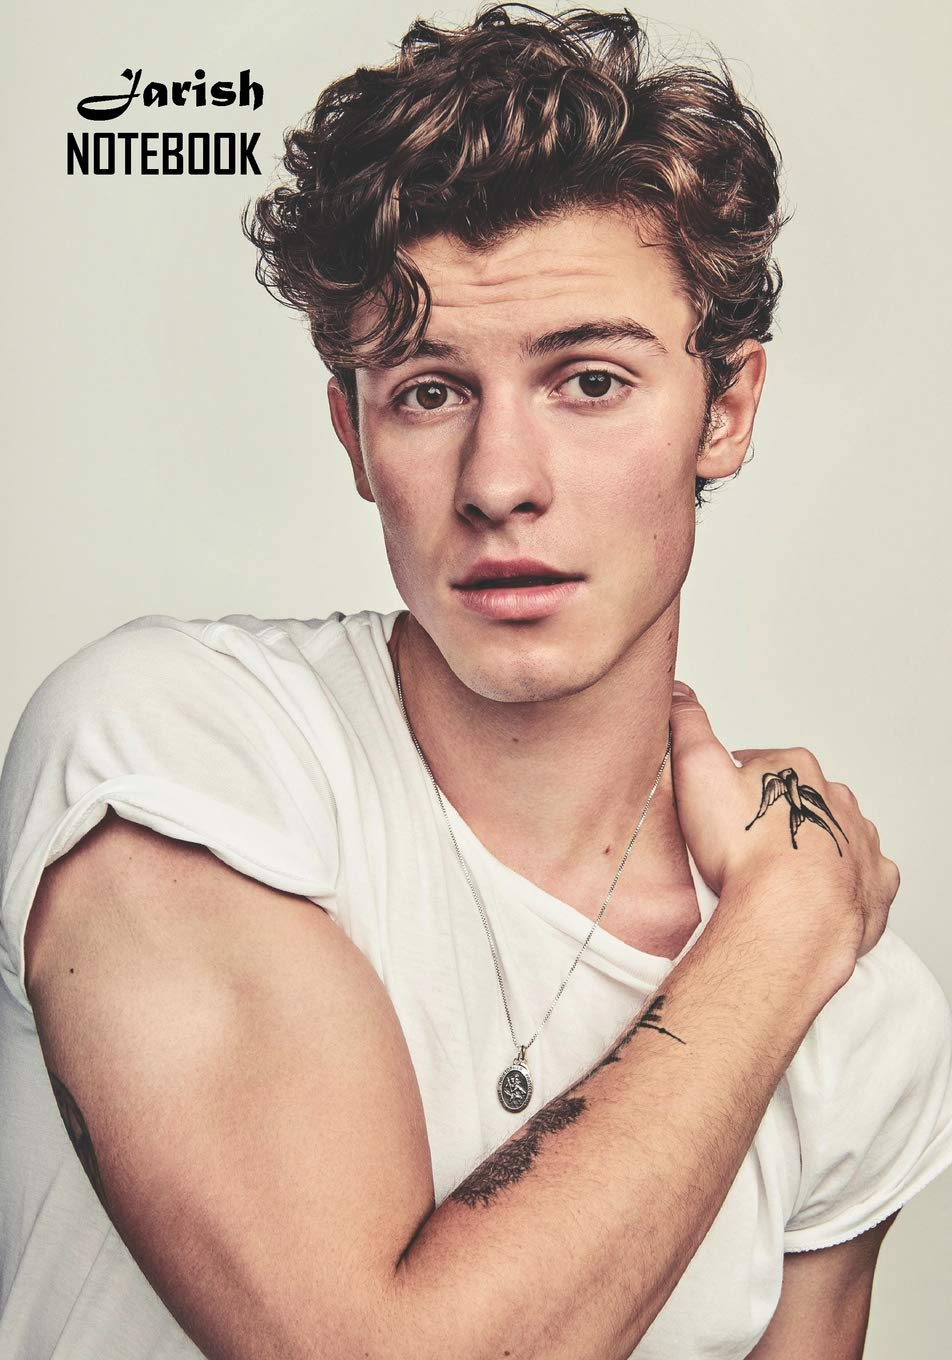 Notebook  Shawn Mendes Medium College Ruled Notebook 129 Pages Lined 7 X 10 In  17.78 X 25.4 Cm